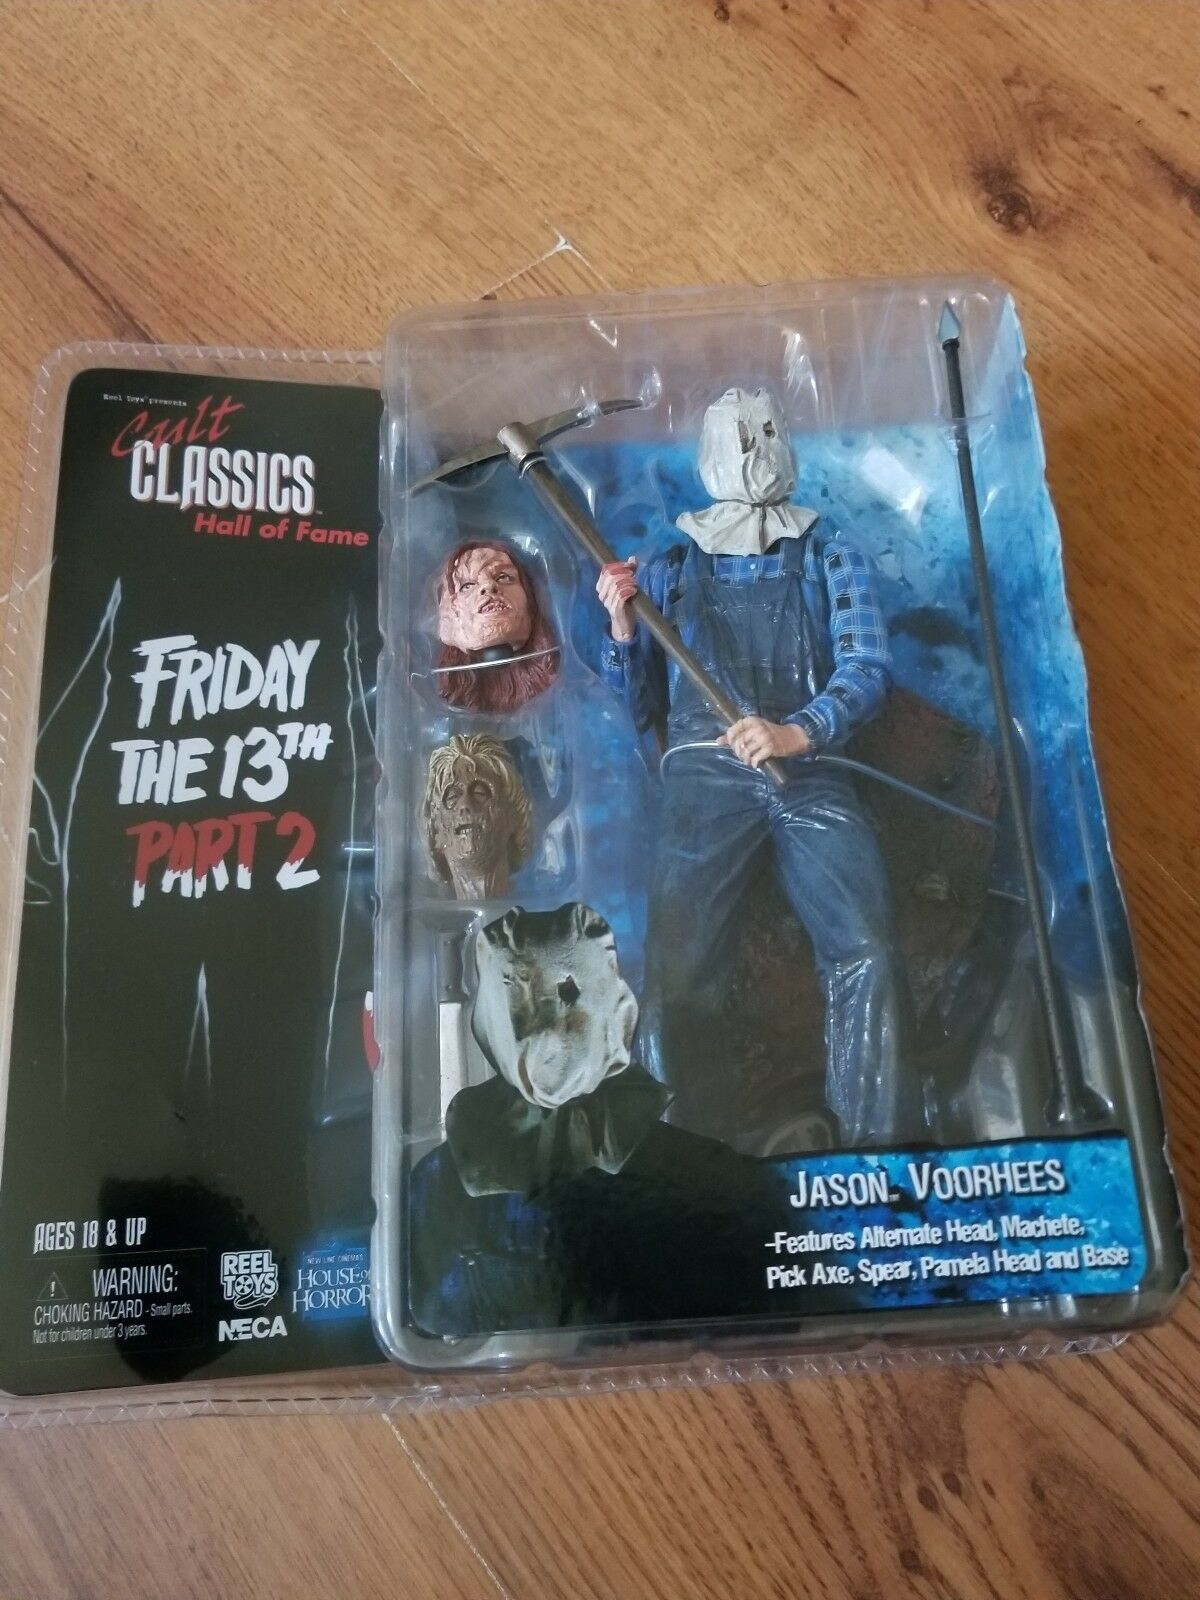 NECA Cult classeics Htutti Of Fame Friday the 13th Part 2  Jason Voorhees azione F